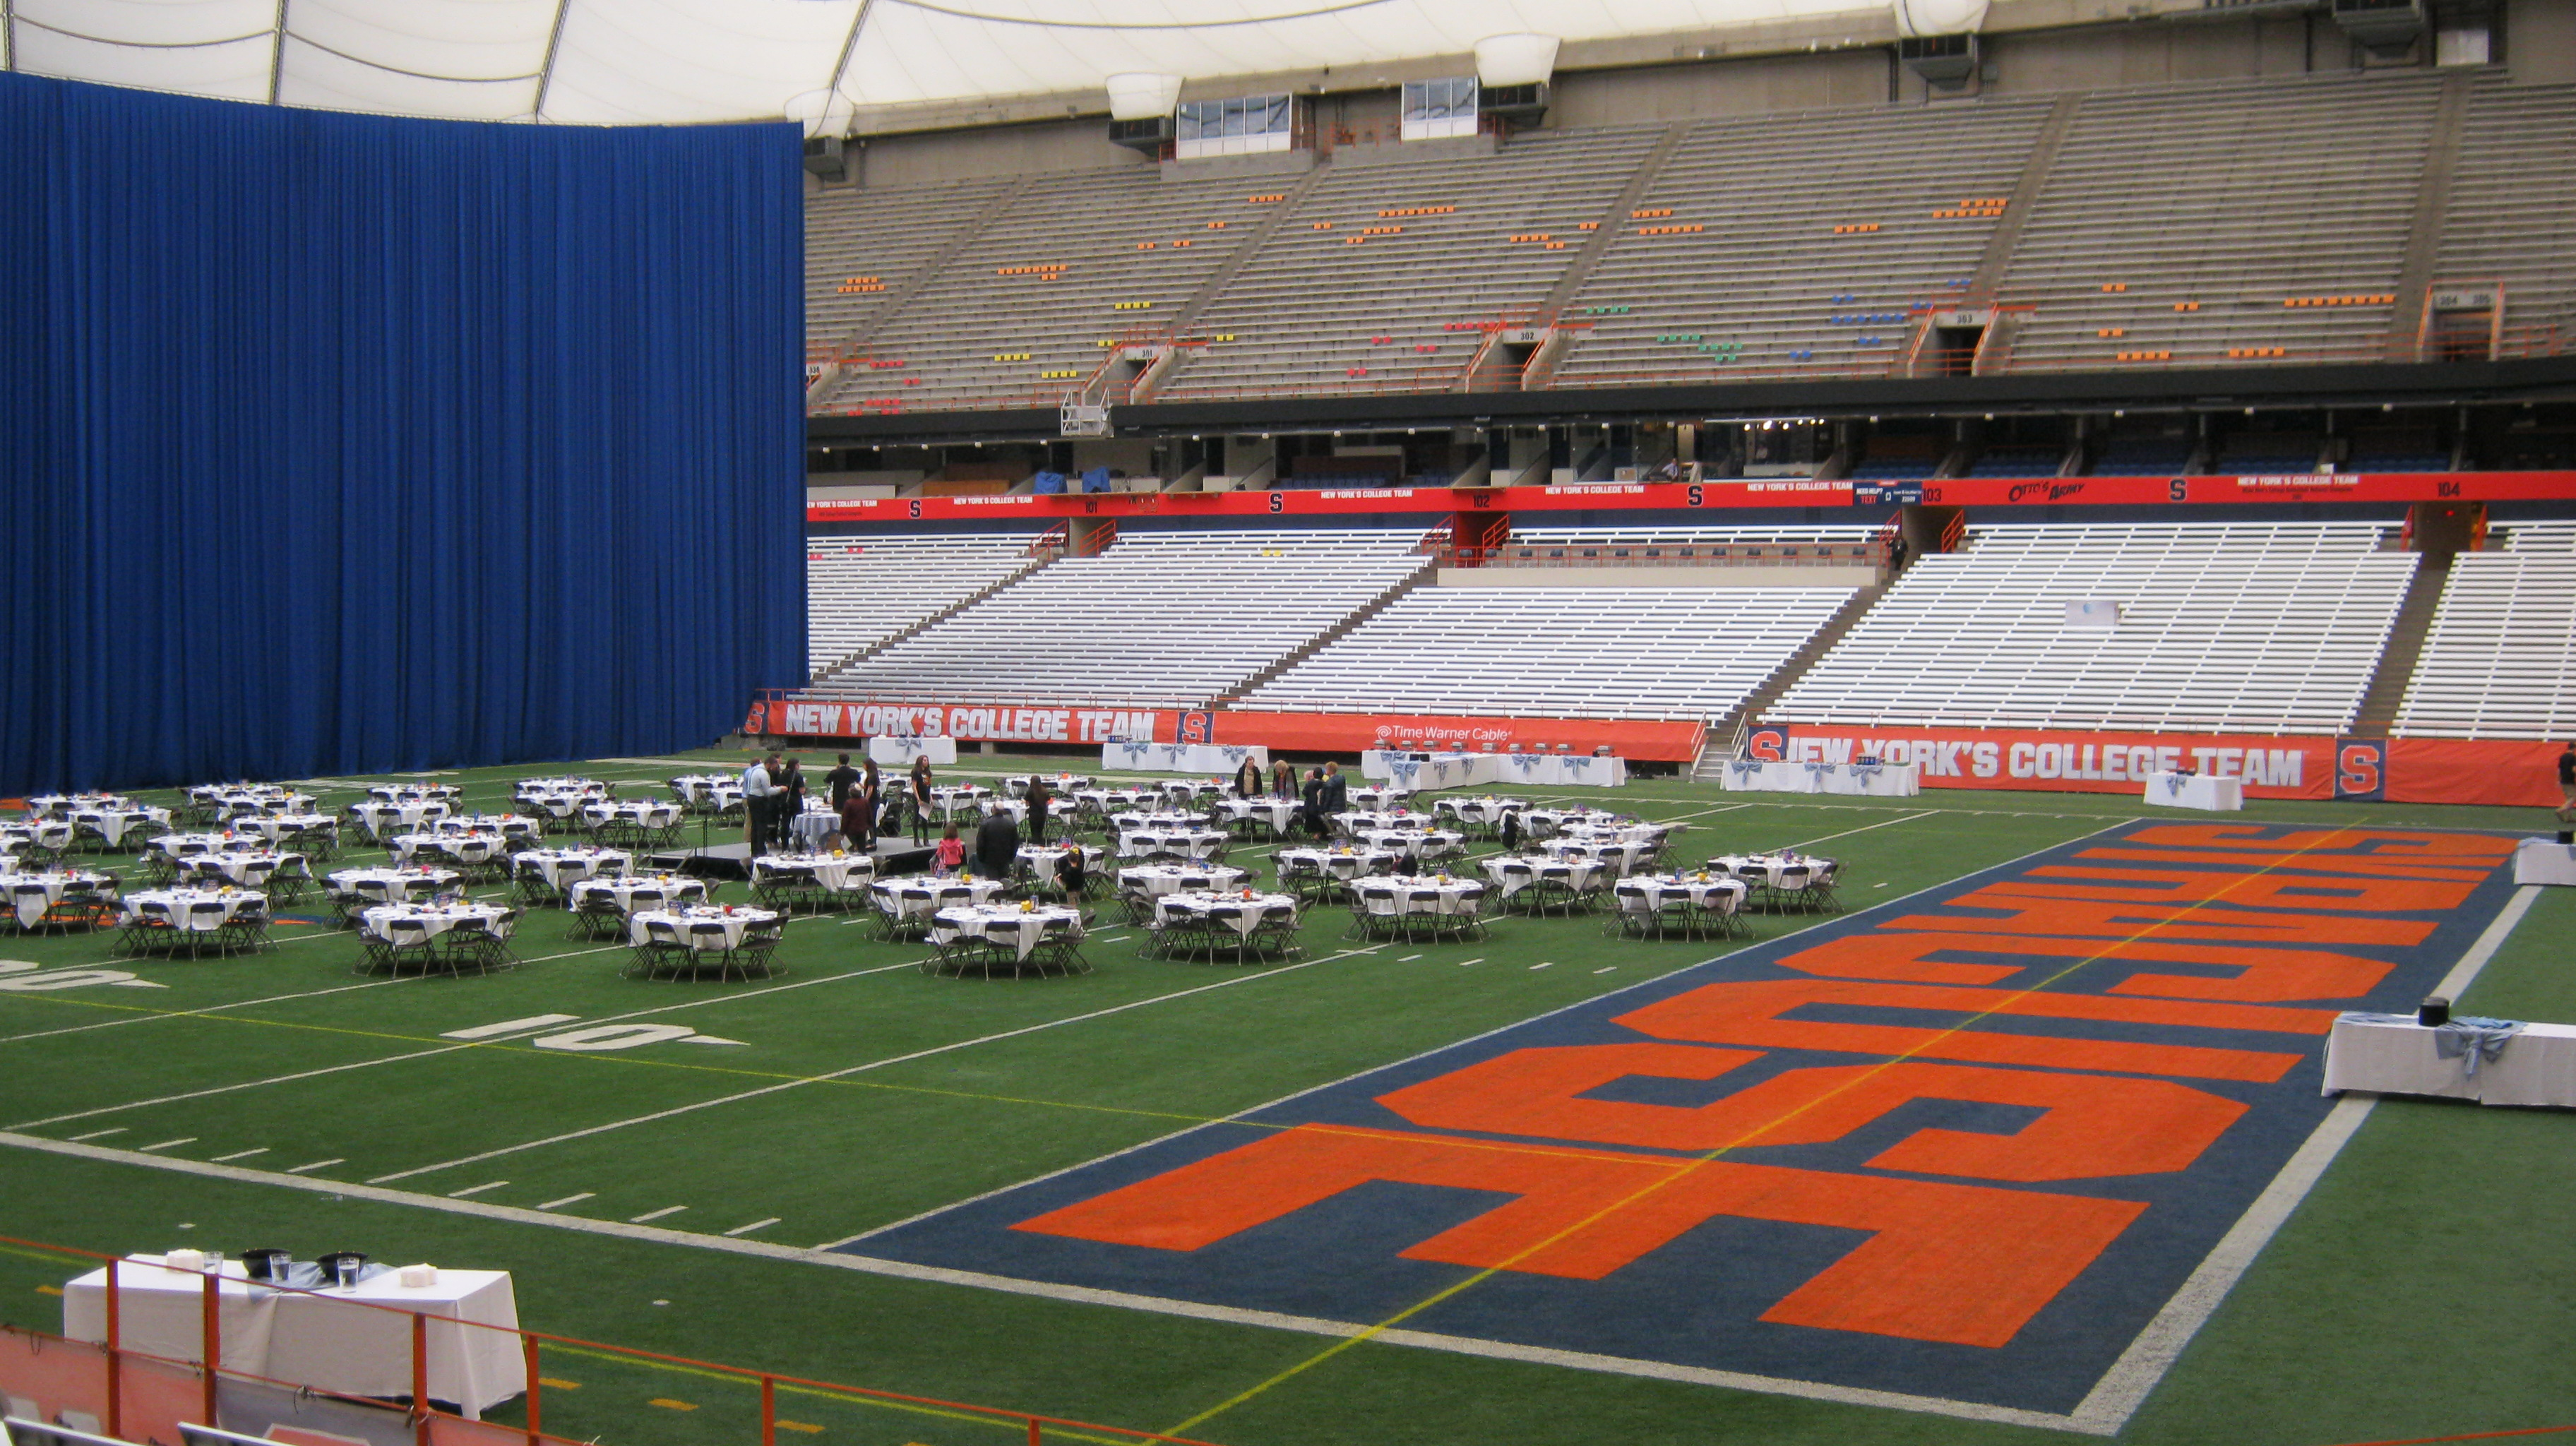 Caption: Syracuse University Passover in the Carrier Dome Breaks Their Record with 530 People in Attendance